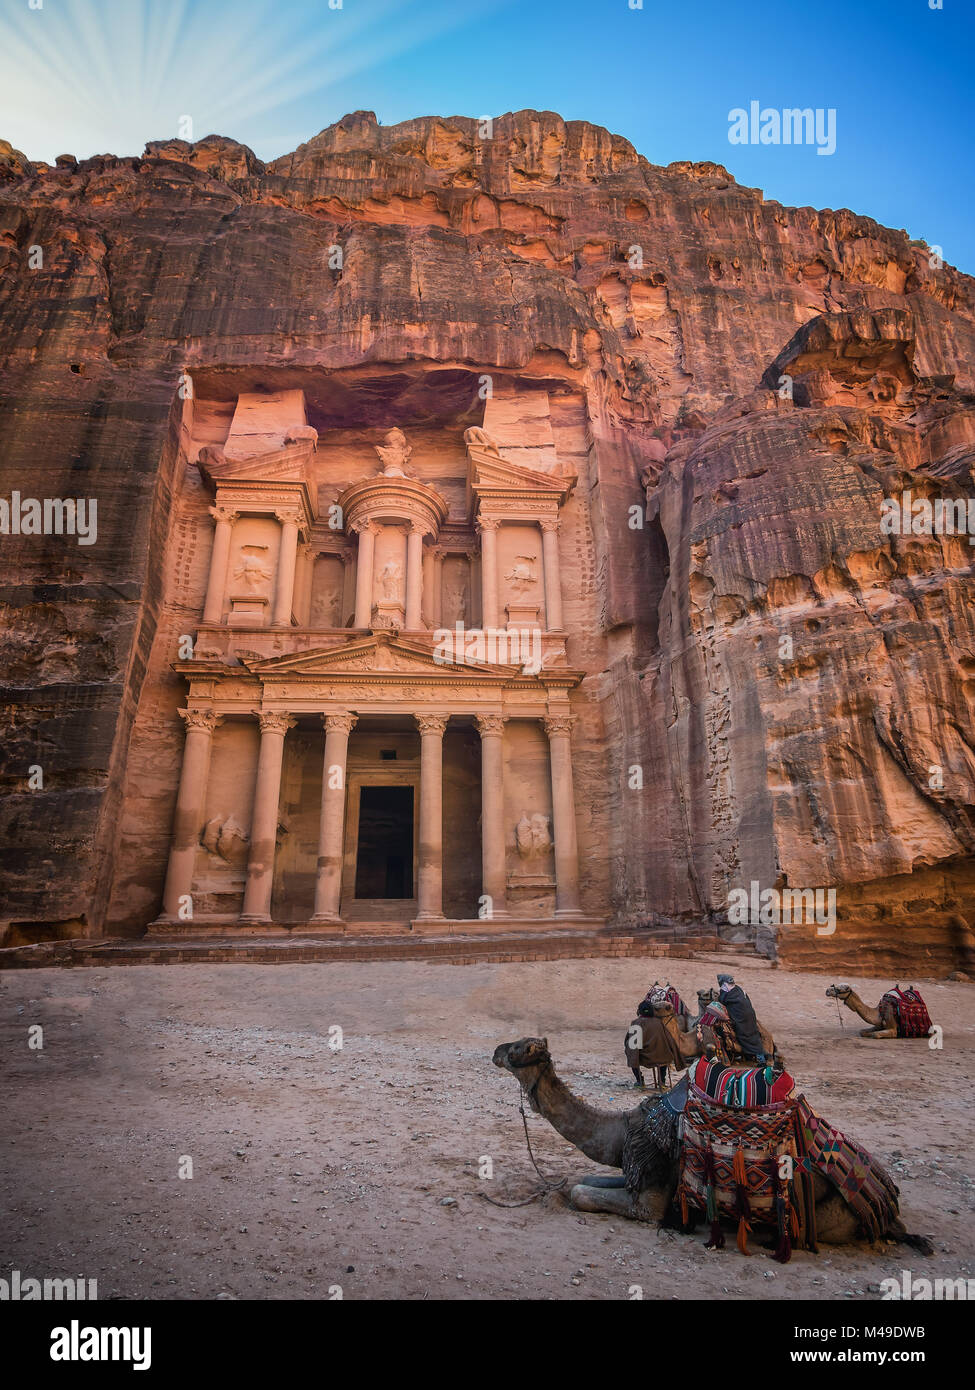 The Shrine in Petra seen from the gorge, Jordan - Stock Image